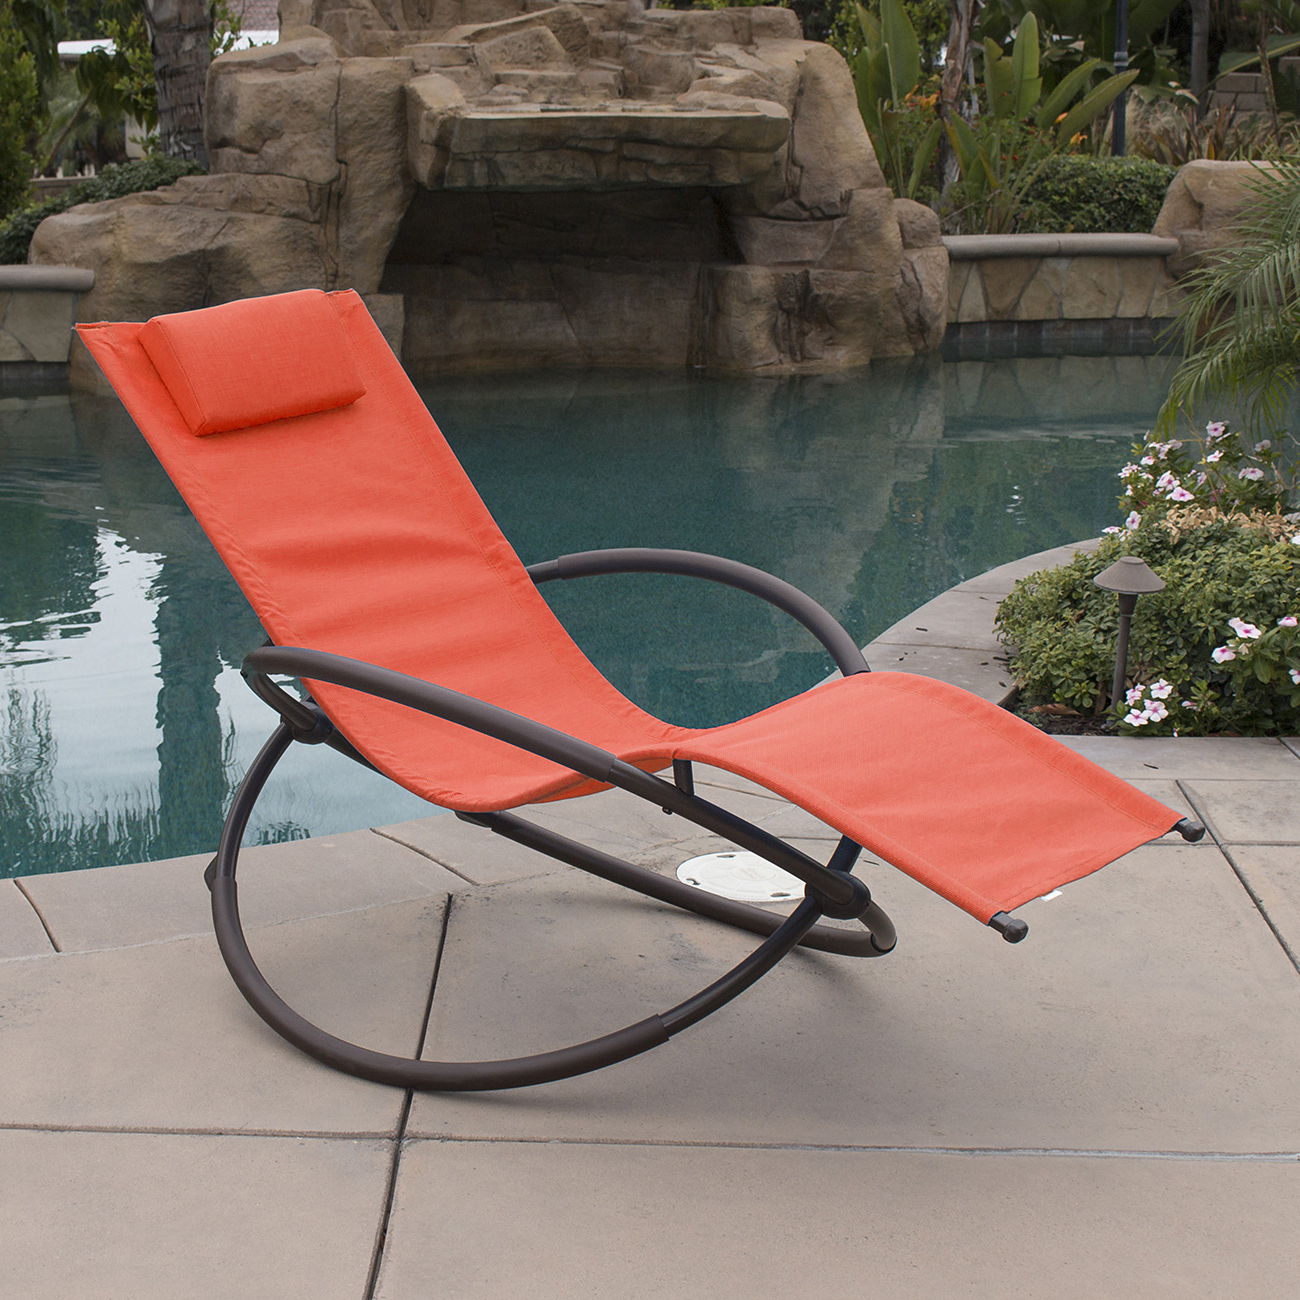 Orbital Patio Lounger Rocking Chairs For Famous Bellezeâ© Zero Gravity Orbital Lounger Rocking Chair Outdoor Patio Yard Furniture, (black) (Gallery 4 of 25)